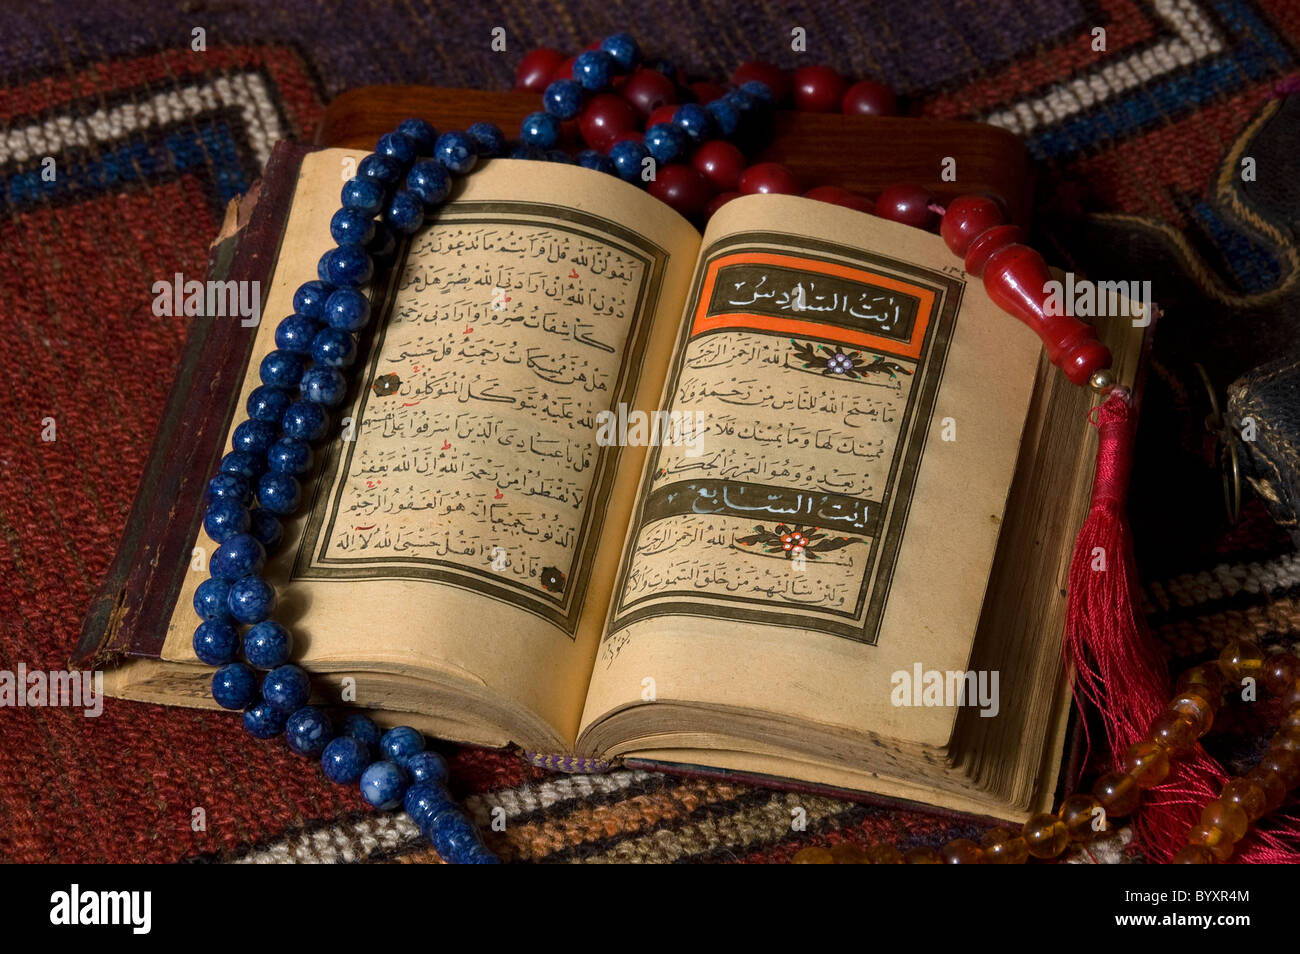 Illustrated Holy Quran with prayer beads - Stock Image